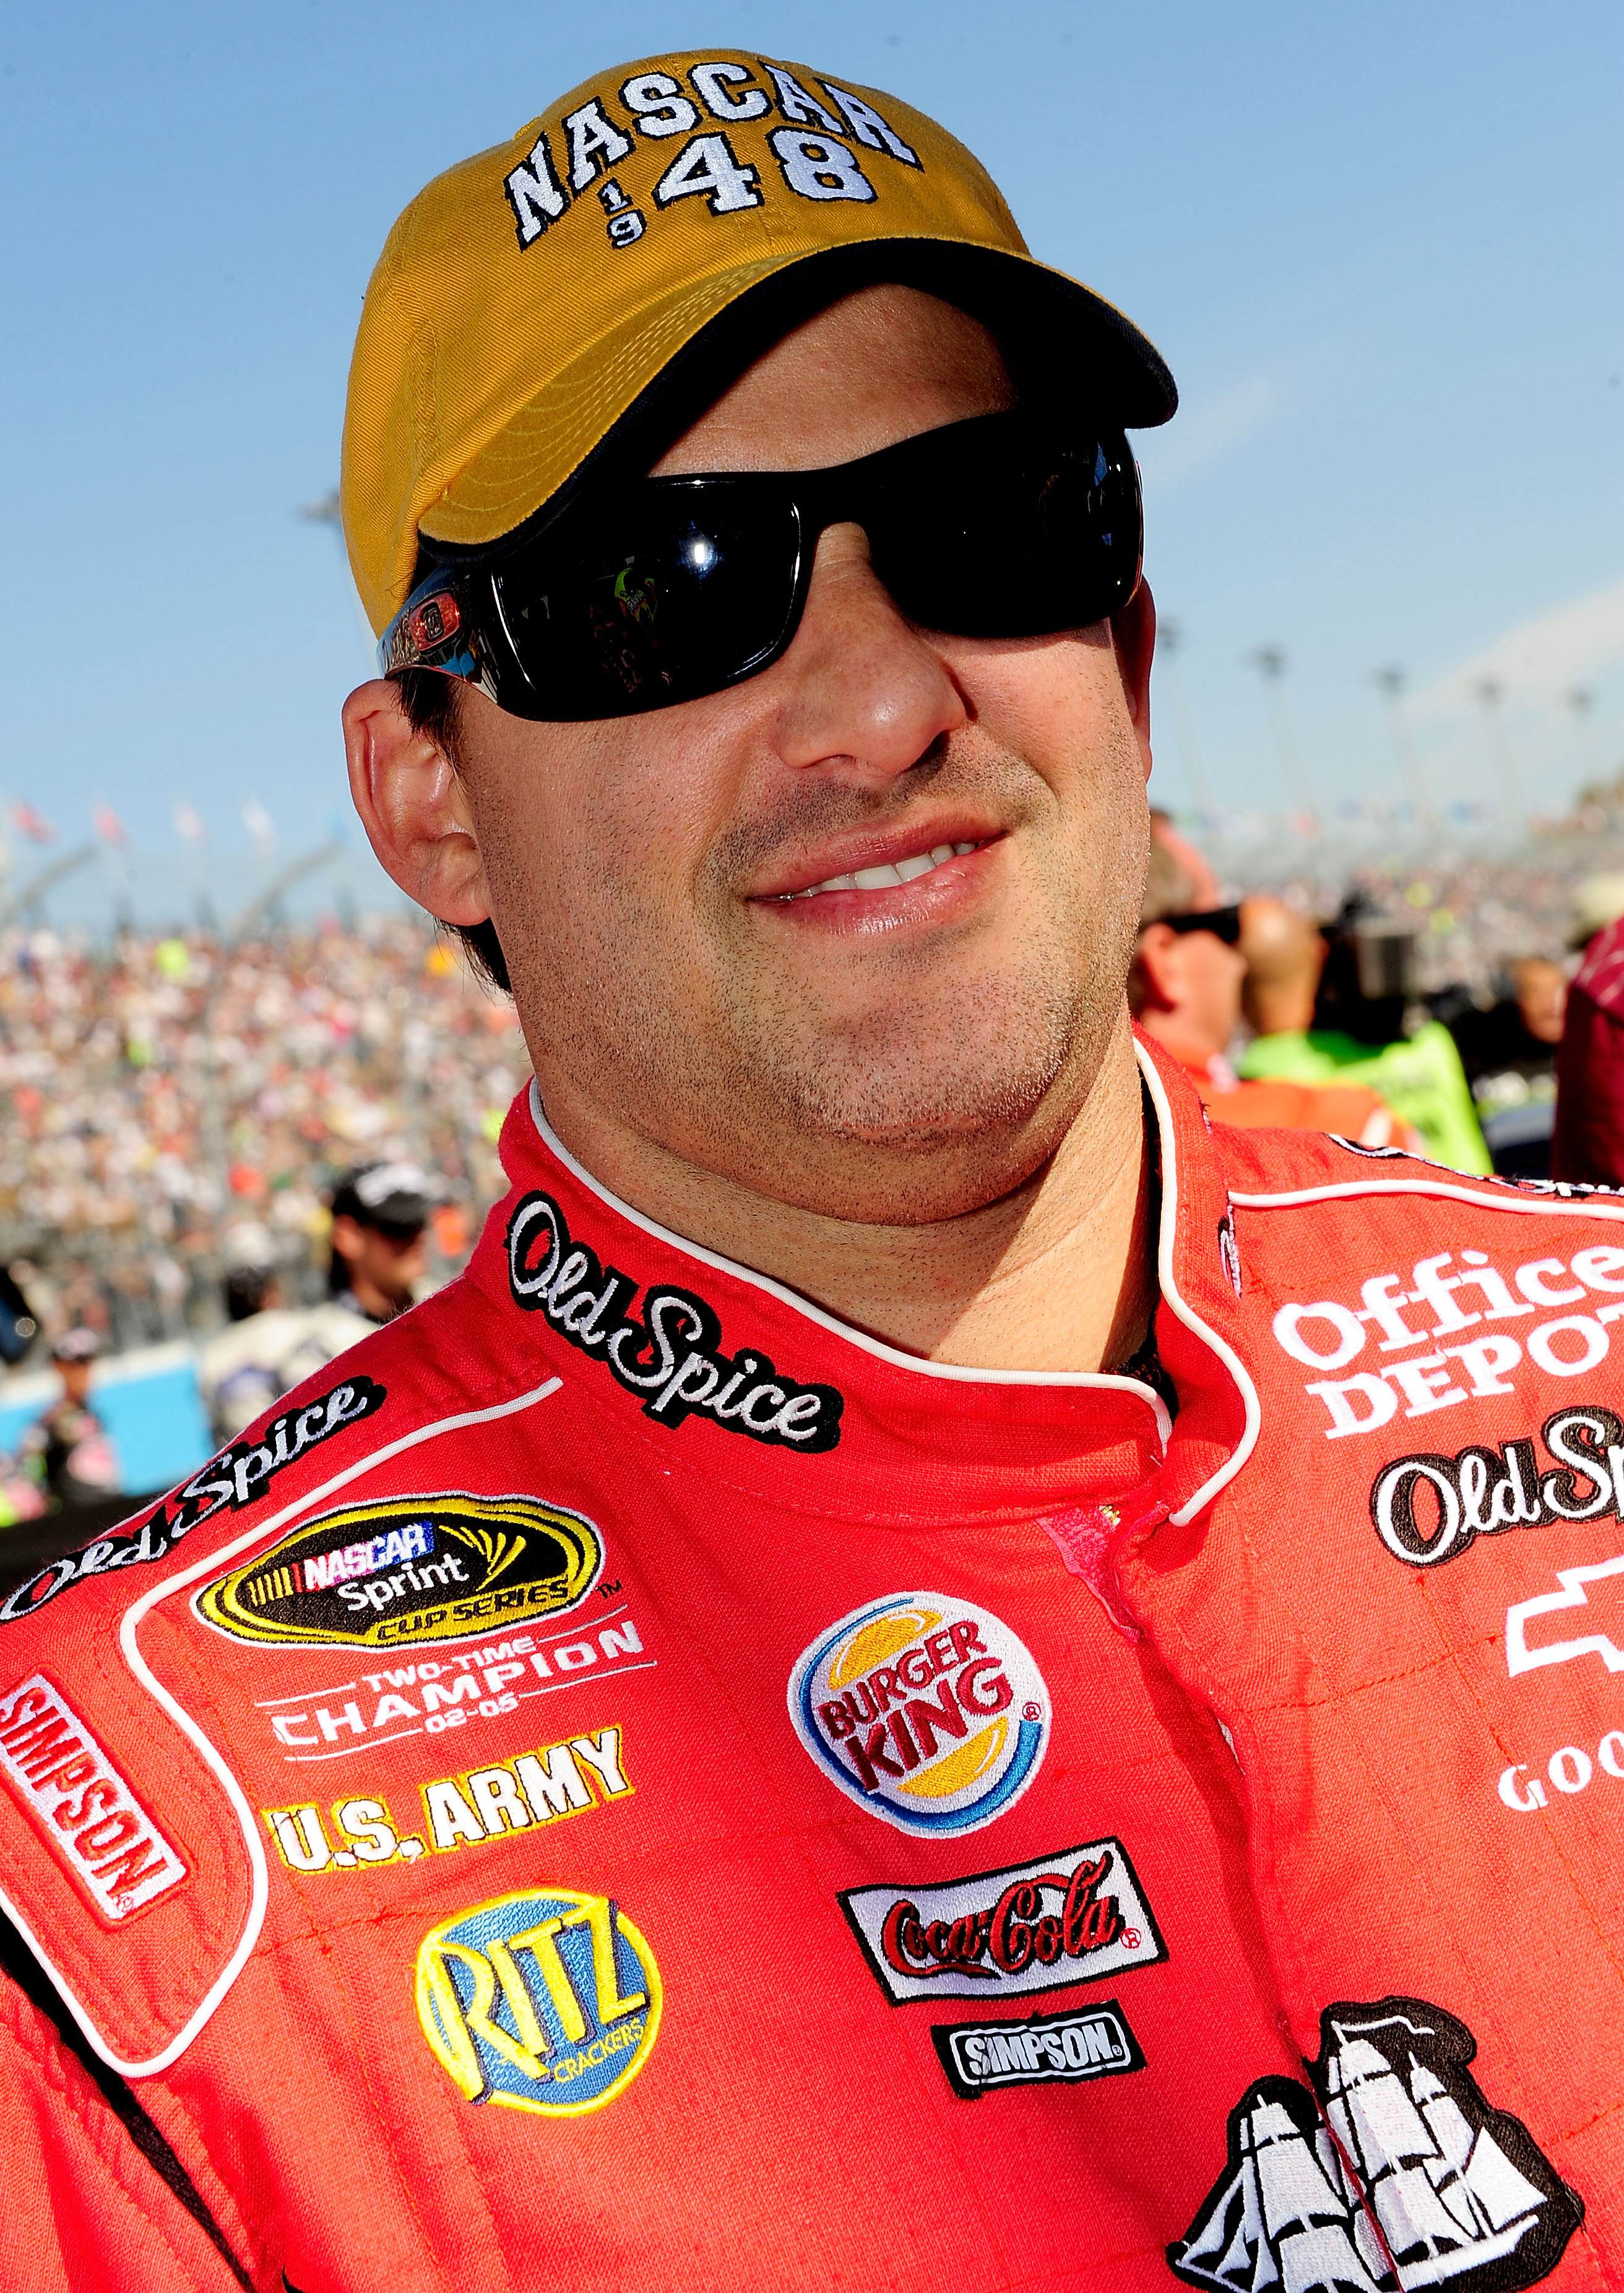 AVONDALE, AZ - NOVEMBER 14:  Tony Stewart, driver of the #14 Old Spice/Office Depot Chevrolet, stands on the starting grid prior to the NASCAR Sprint Cup Series Kobalt Tools 500 at Phoenix International Raceway on November 14, 2010 in Avondale, Arizona.